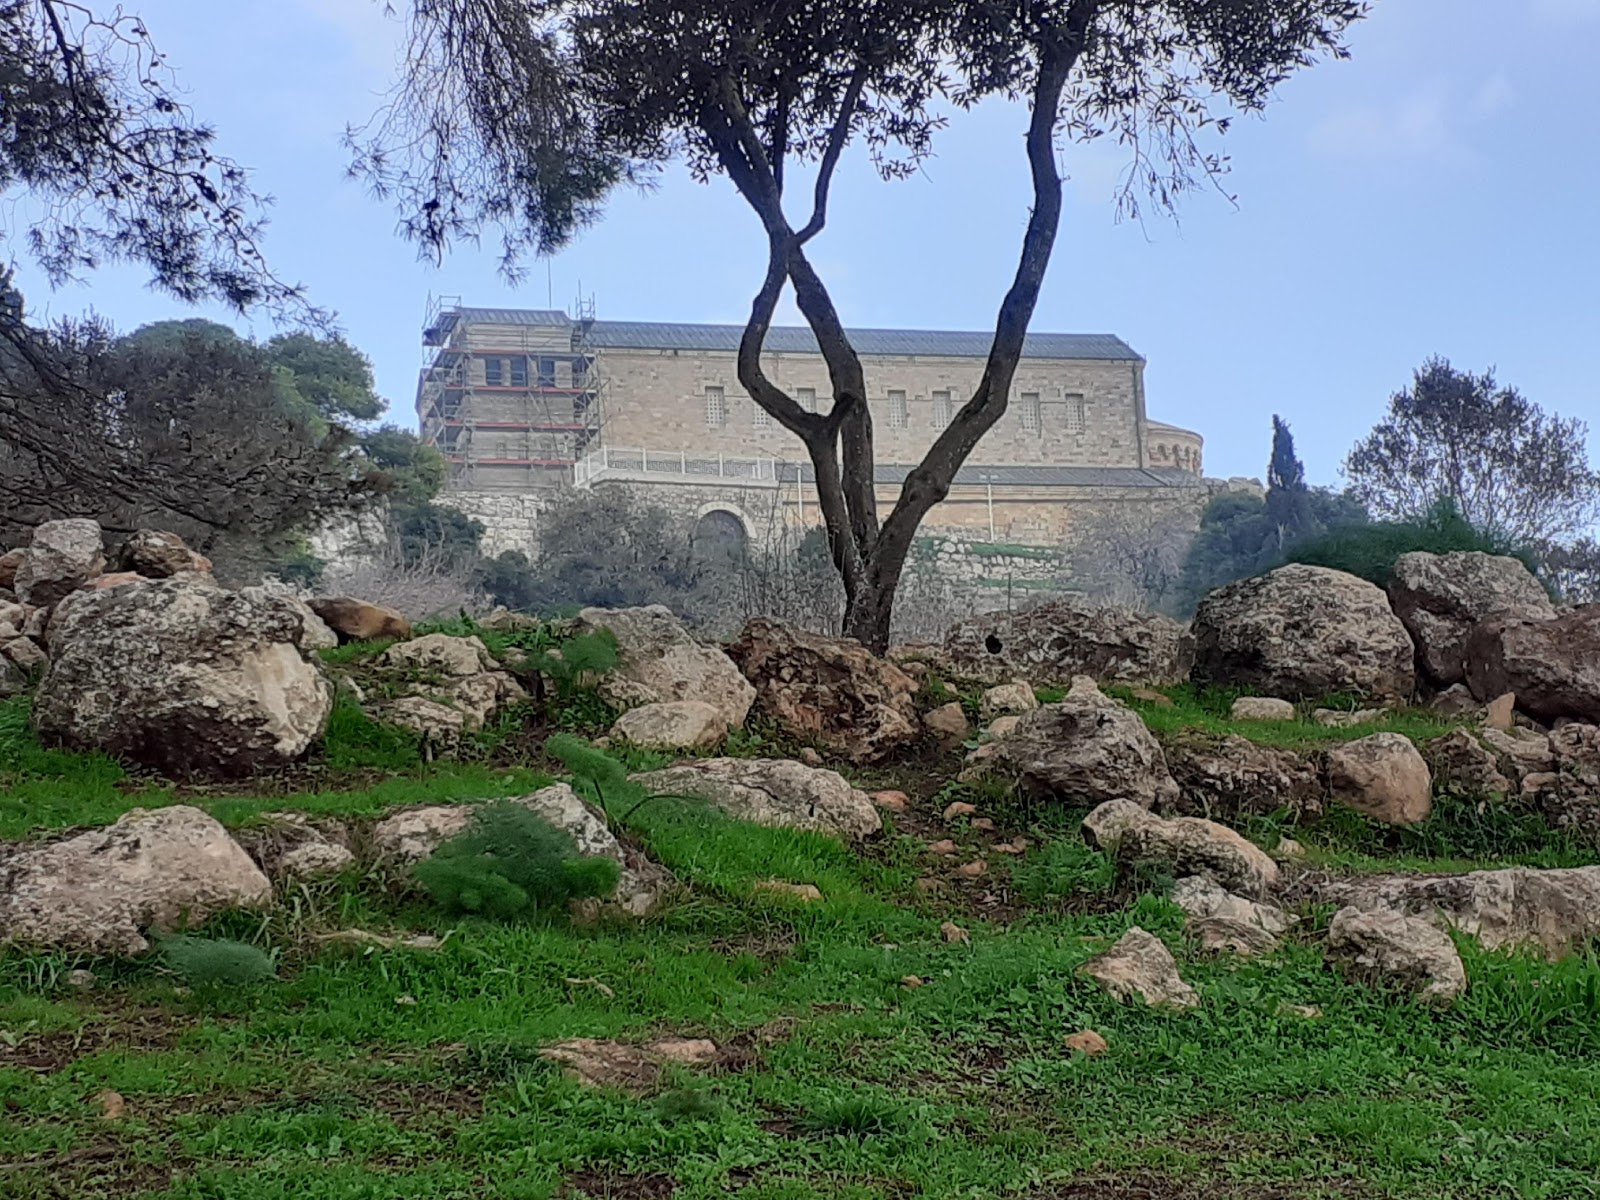 Day 10, Shvil Yisrael: From Gazit Junction to Mount Yona (19km)